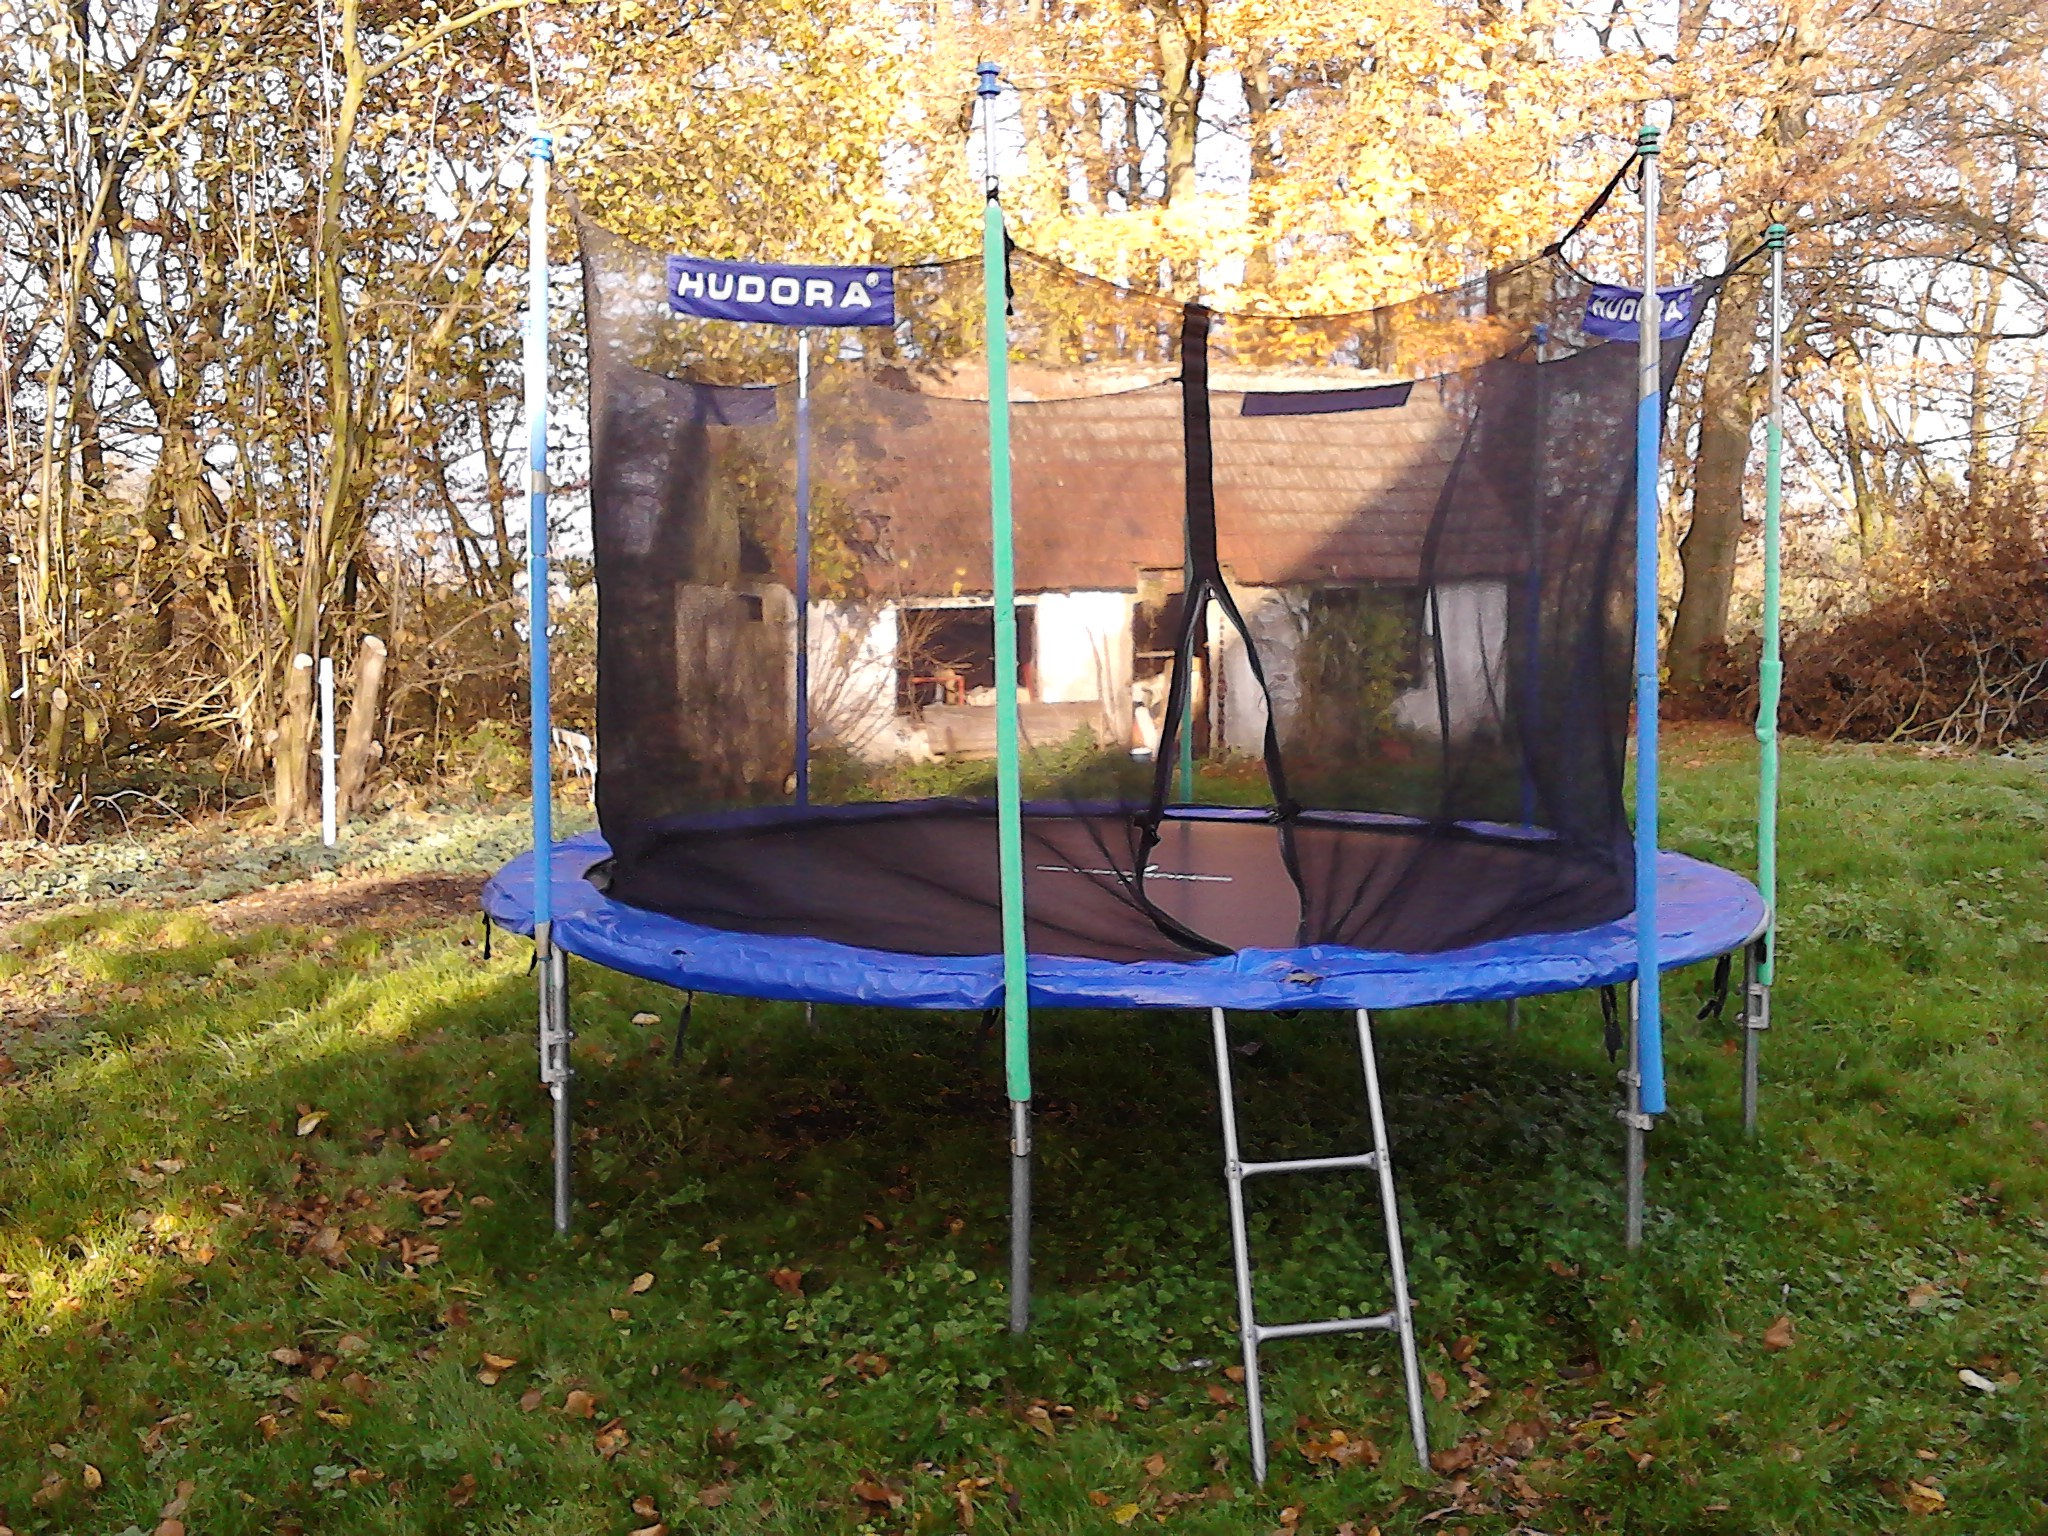 trampolin test 2018 die besten trampoline im vergleich. Black Bedroom Furniture Sets. Home Design Ideas